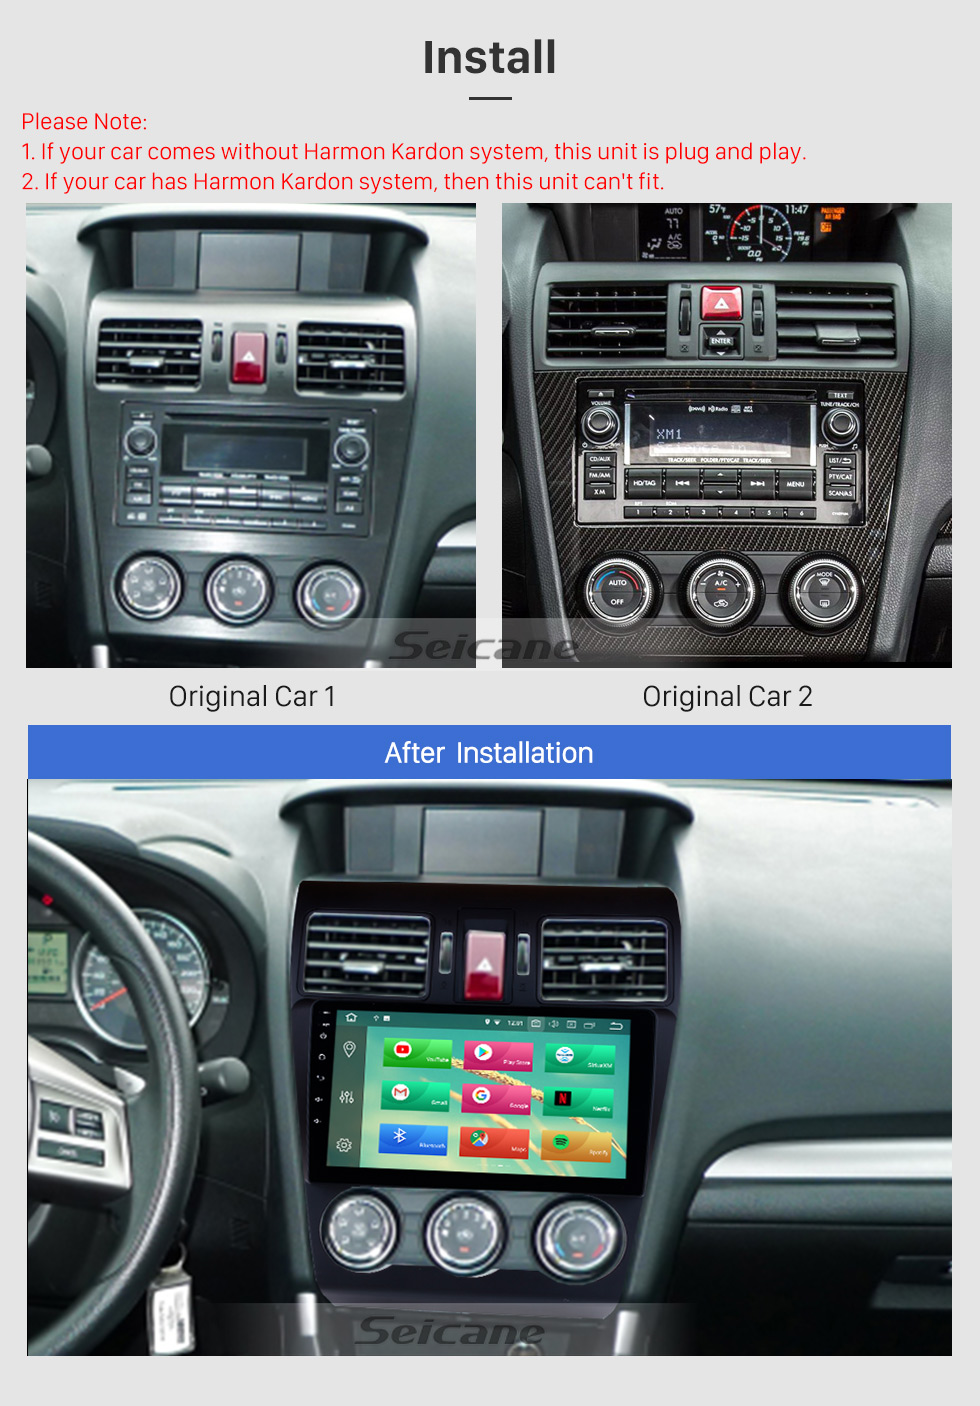 Seicane 9 inch HD Android 8.0 Radio Capacitive Touch Screen for 2014 2015 2016 Subaru Forester Support 3G WiFi Bluetooth GPS Navigation system TPMS DAB DVR OBD II AUX Headrest Monitor Control Video Rear camera USB SD